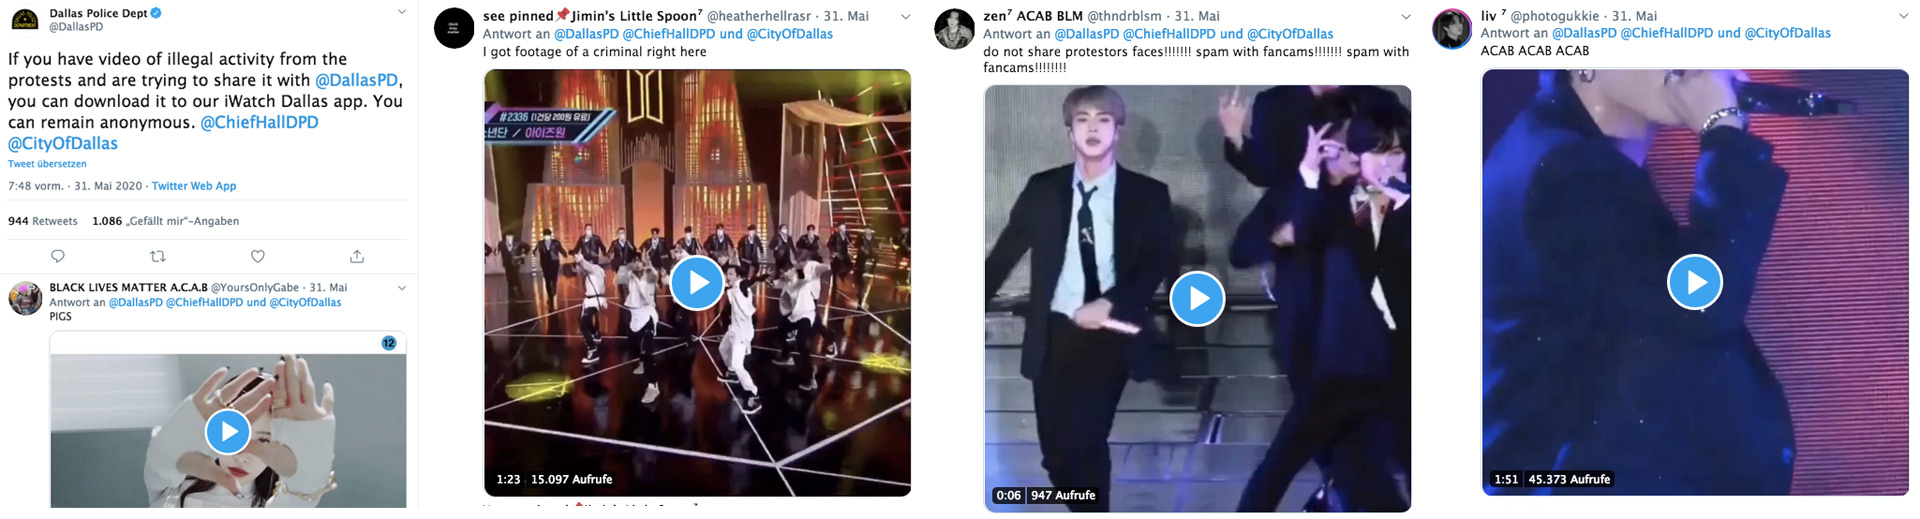 Collective Action K Pop Stans Are Boosting Us Protests Against